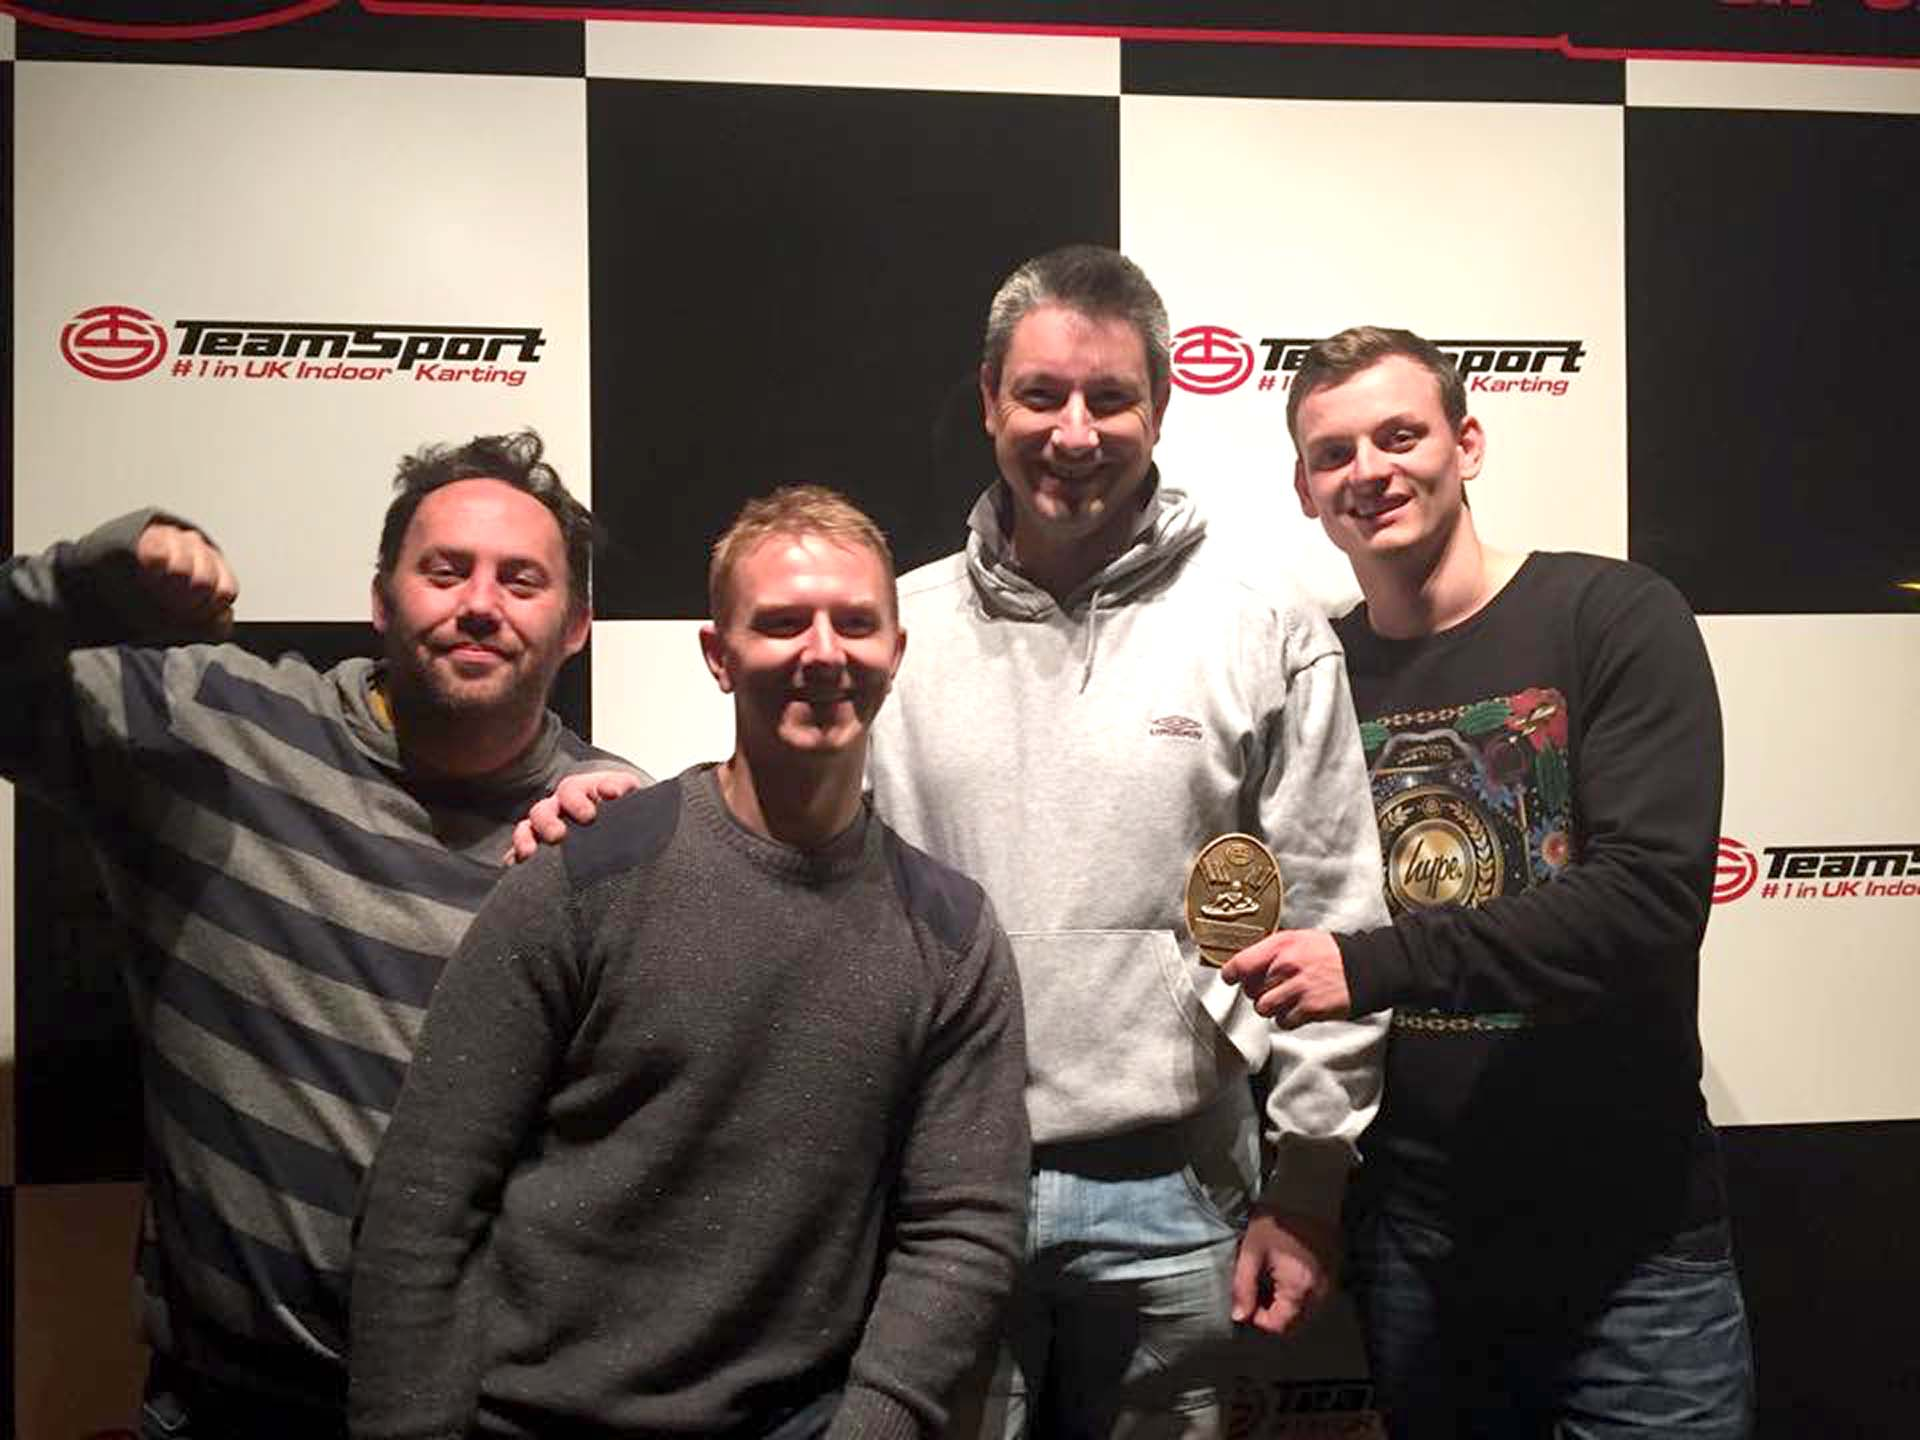 Phil, Tony, Simon and Bradley Go-Karting